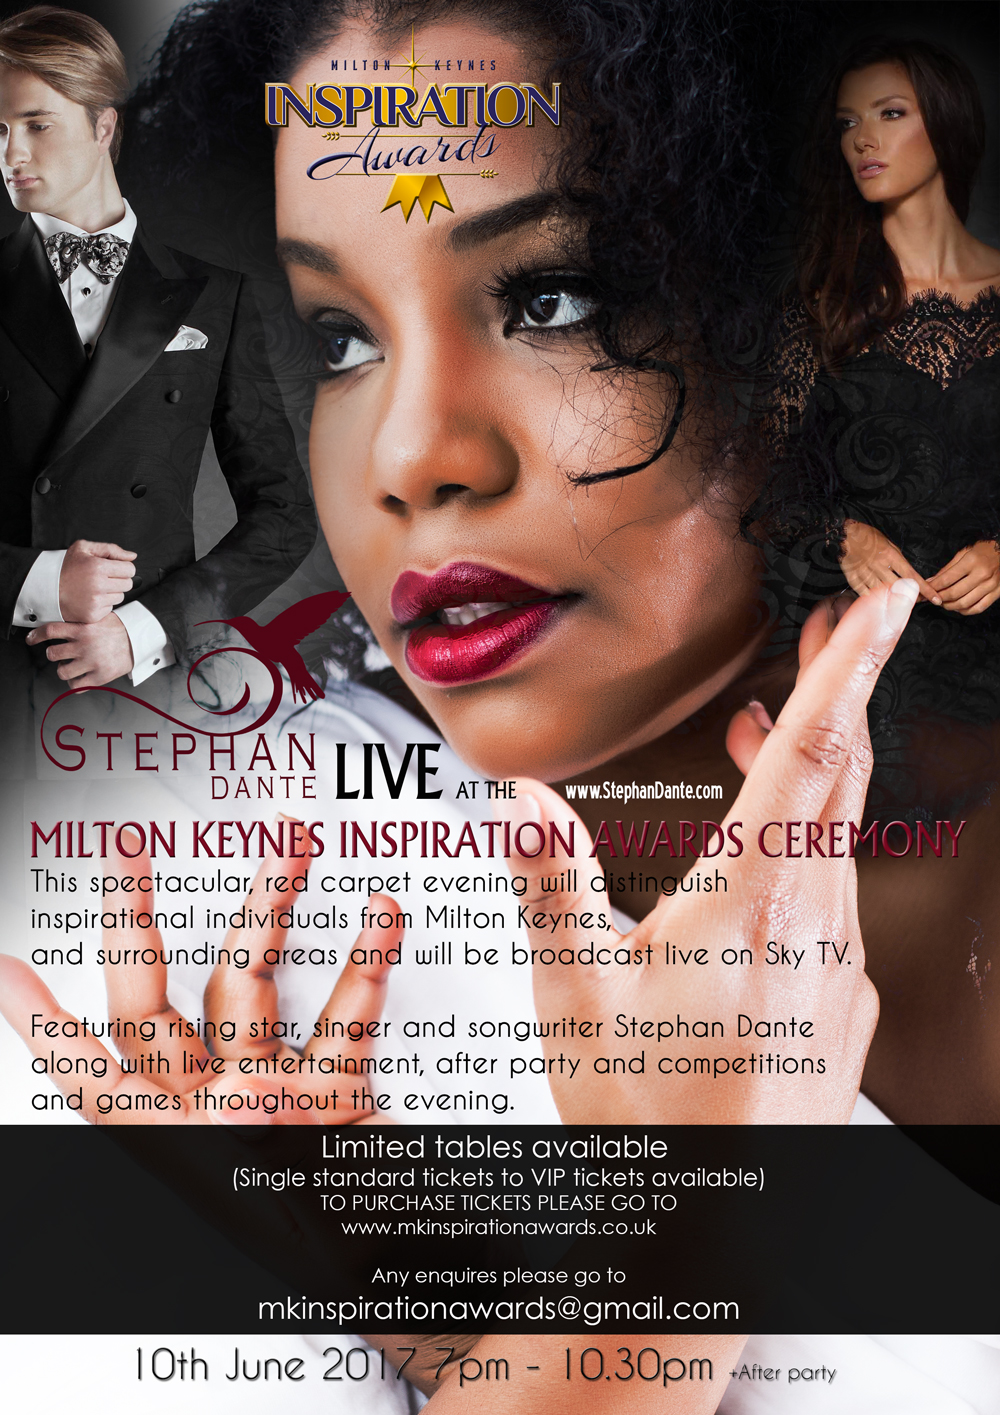 Watch Stephan Dante Live at the Inspiration Awards in Milton Keynes